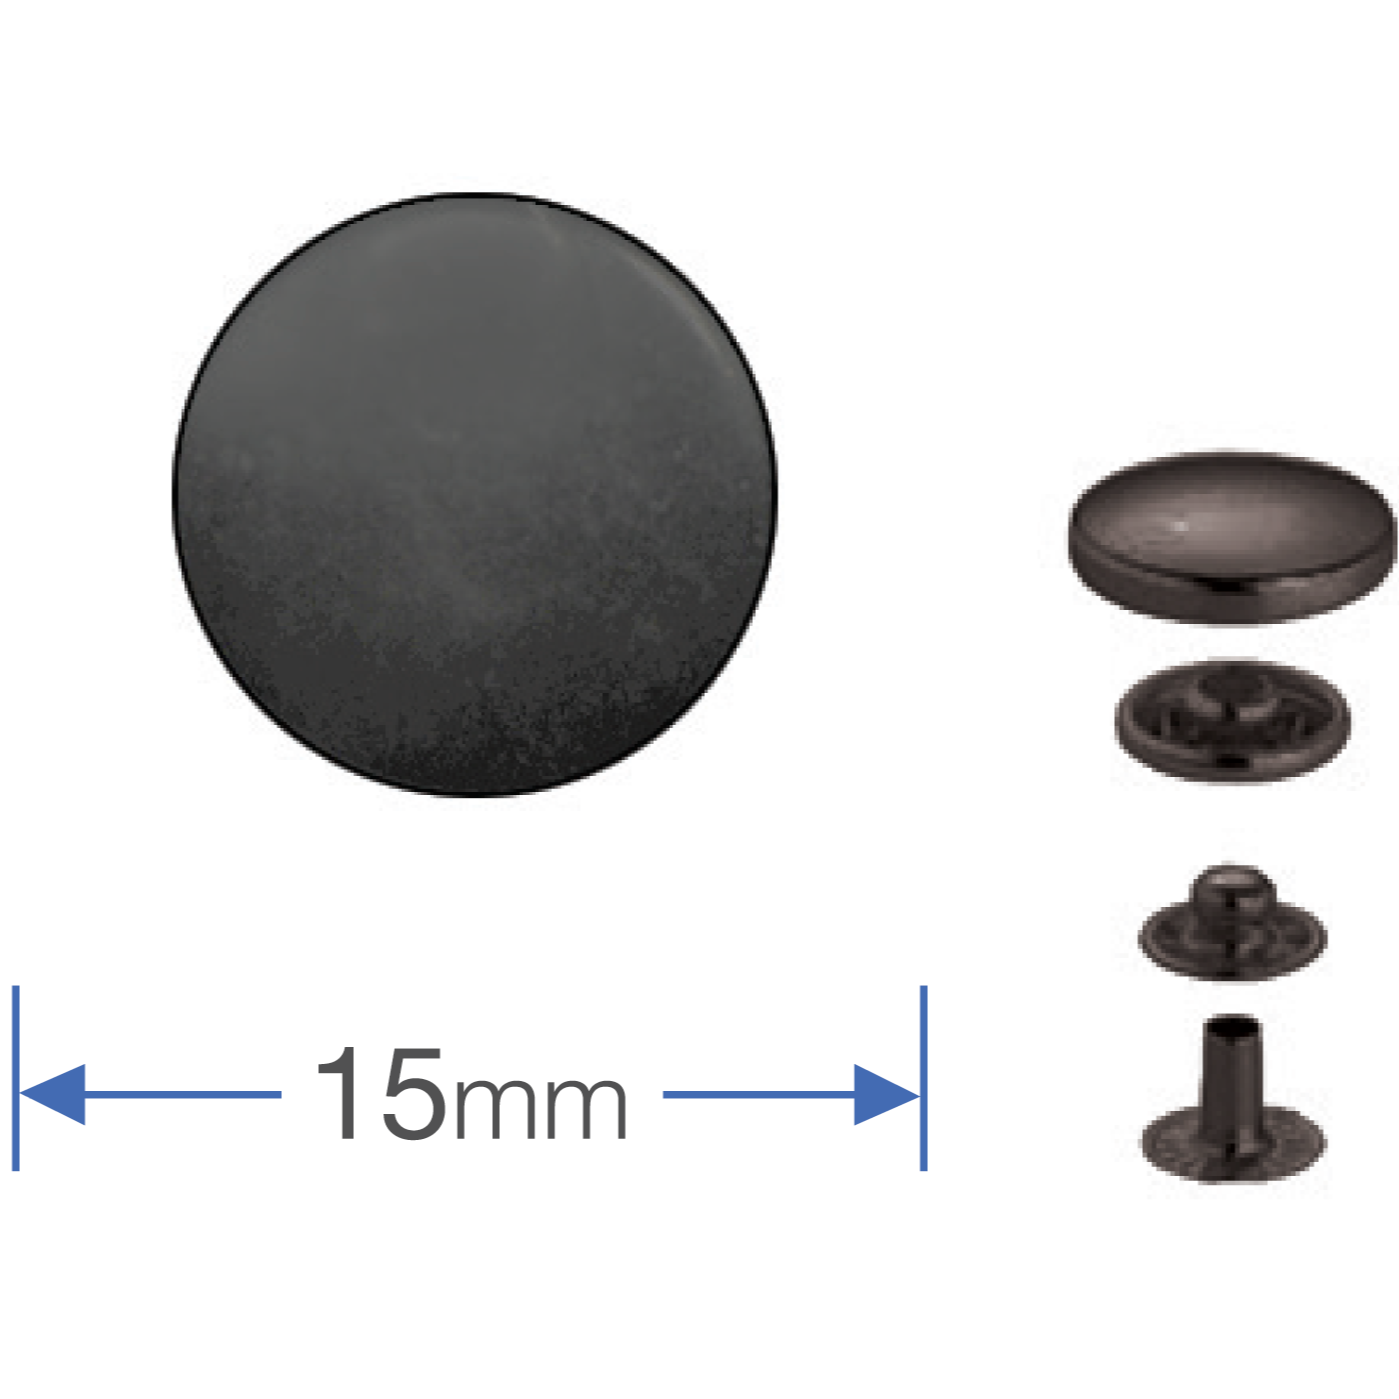 Press Studs (Non-Sew) - Gun Black 15mm: PACK OF 10